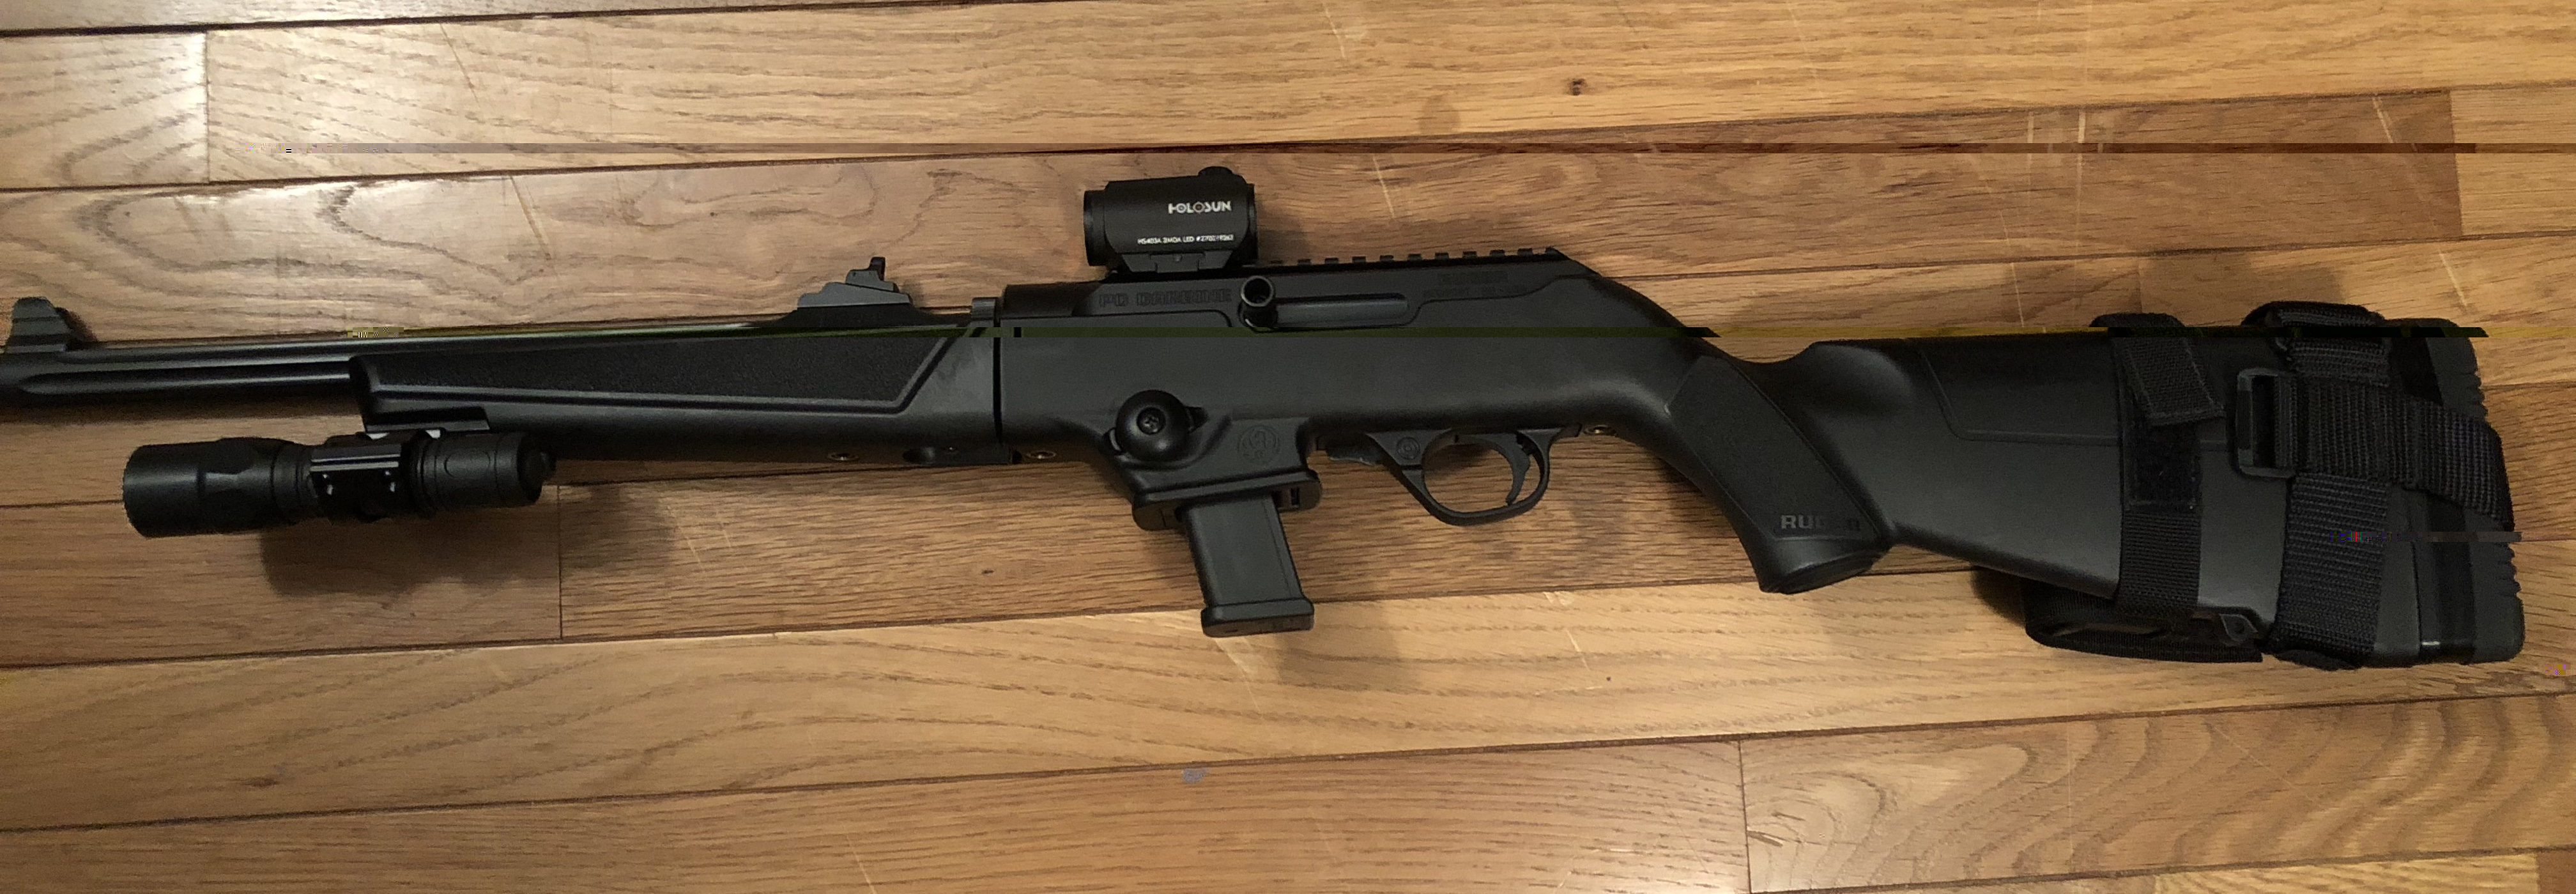 NEW: Ruger PC Carbine In 9mm (Yes, it DOES take Glock mags) - Page 7